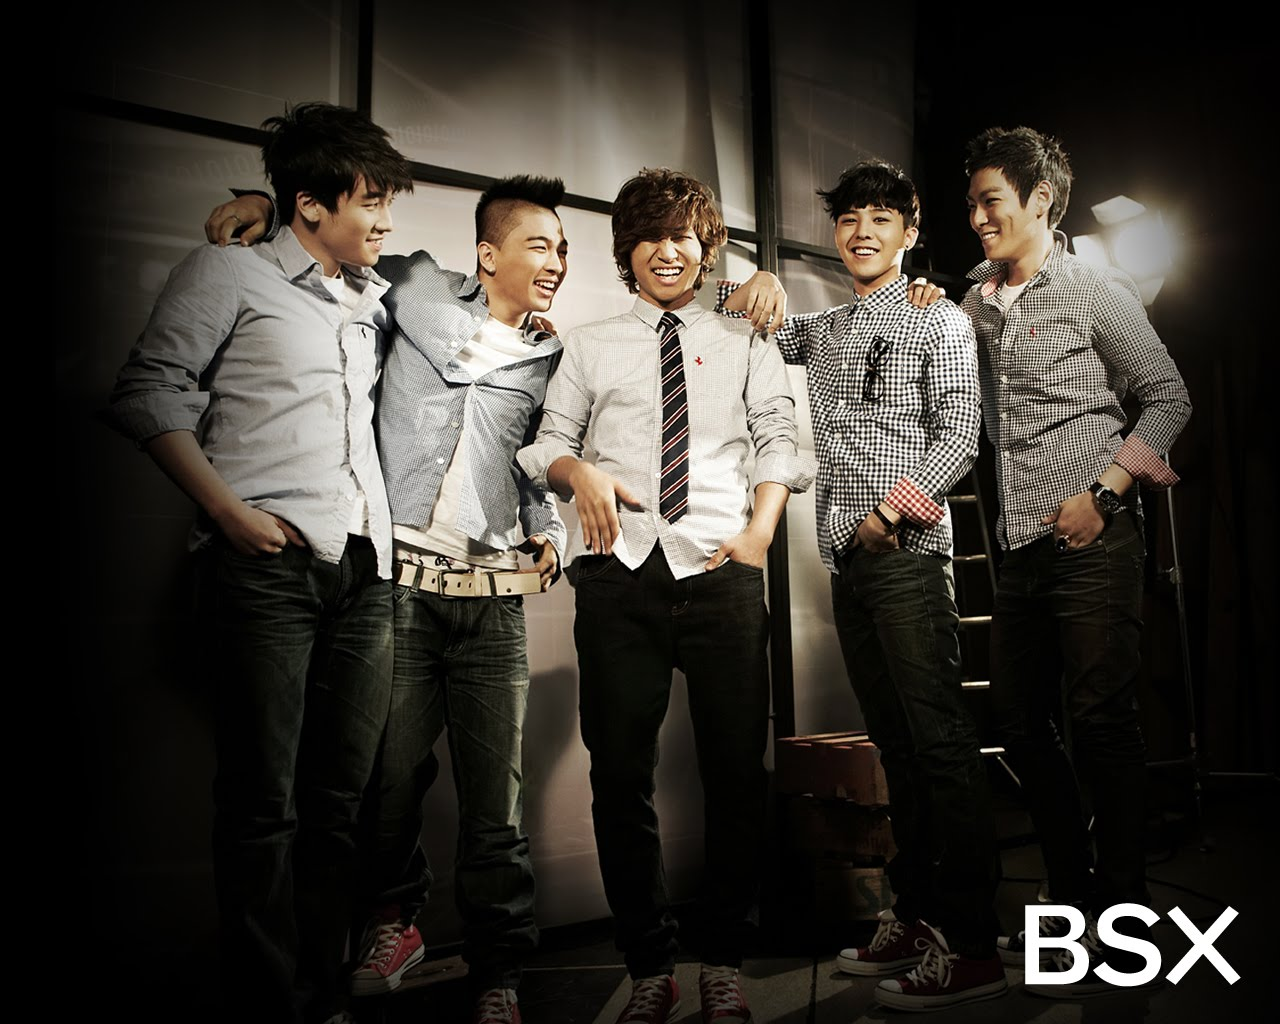 Big Bang Top Wallpaper - WallpaperSafari